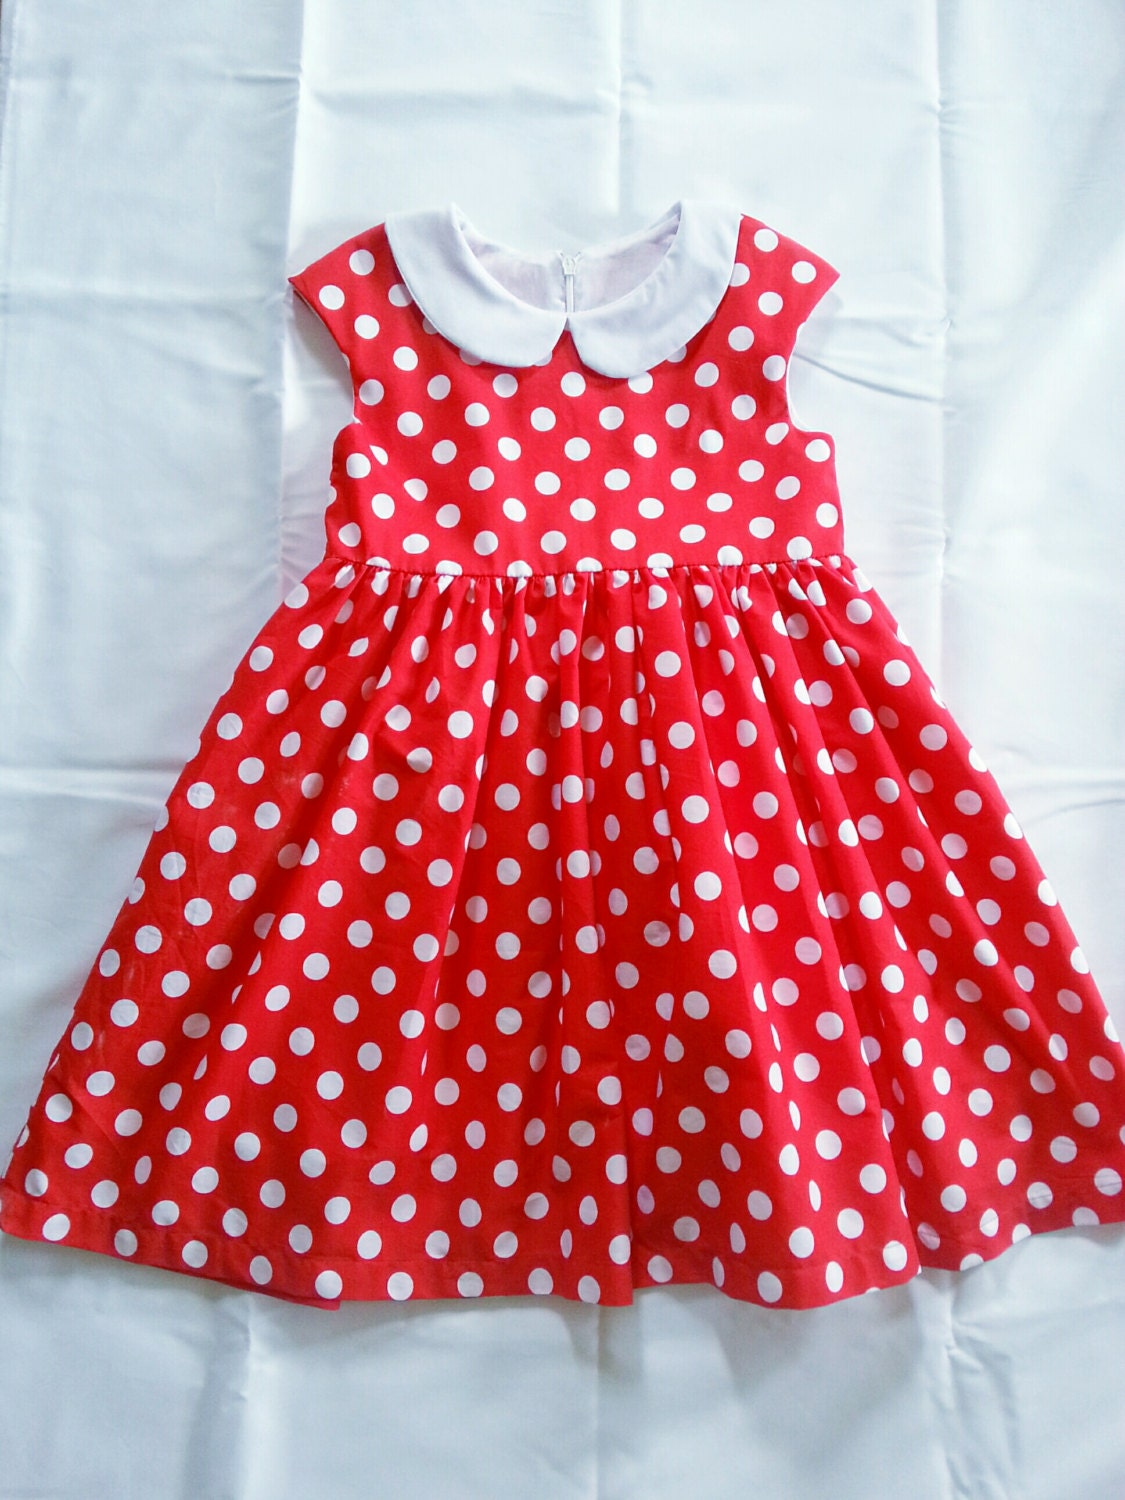 Disney Minnie Mouse Clothing. Clothing. Product - Minnie Mouse LIttle Girls' X Polka Dot One-Piece Swimsuit. Clearance. Product Image. Price Disney Little Girls' Minnie Mouse Allover Print Knit Dress, Hot Pink (4) See Details. Product - Girls Minnie Mouse Bi-Fold Wallet Pink.